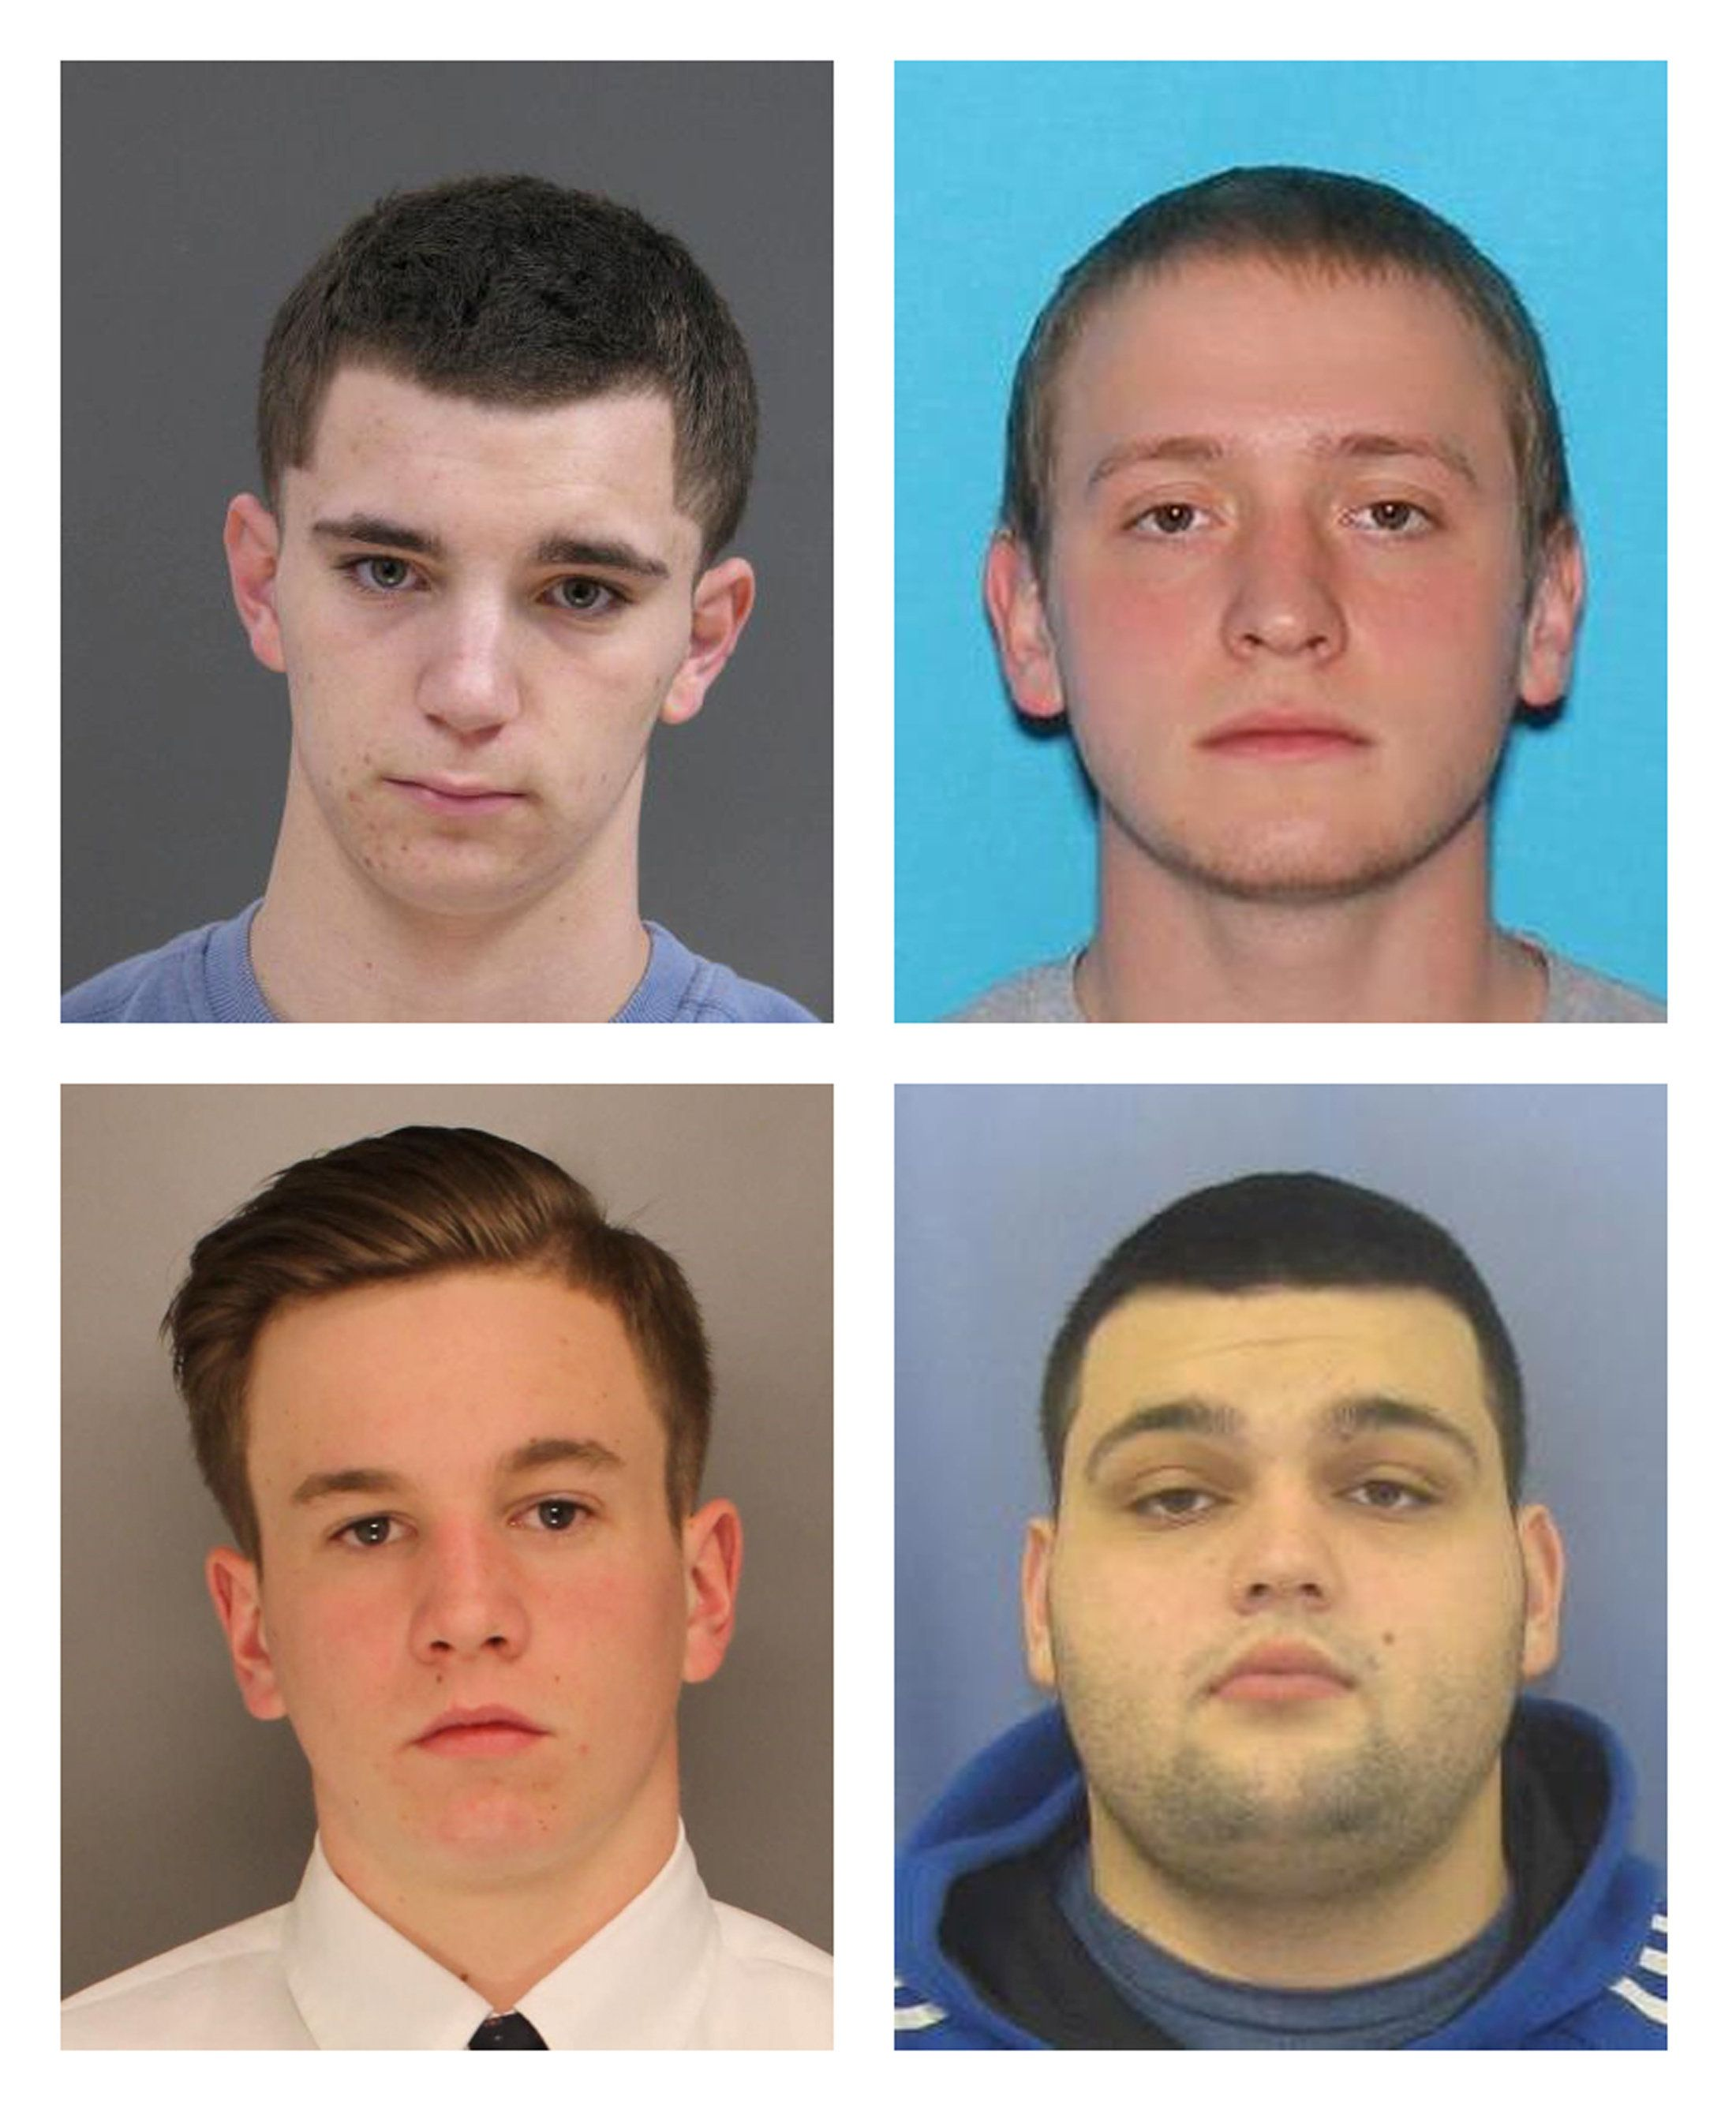 Bucks County District Attorney's Office photos show L-R, top row:  Dean Finocchiaro, 18, and Tom Meo, 21, L-R bottom row: Jimi Patrick, 19, and Mark Sturgis, 22 as authorities say they are focusing their search for the four missing men on a sprawling farm in Bucks County, about 40 miles north of Philadelphia, Pennsylvania, U.S. on July 11, 2017.  Courtesy Bucks County District Attorney's Office/Handout via REUTERS   ATTENTION EDITORS - THIS IMAGE WAS PROVIDED BY A THIRD PARTY.